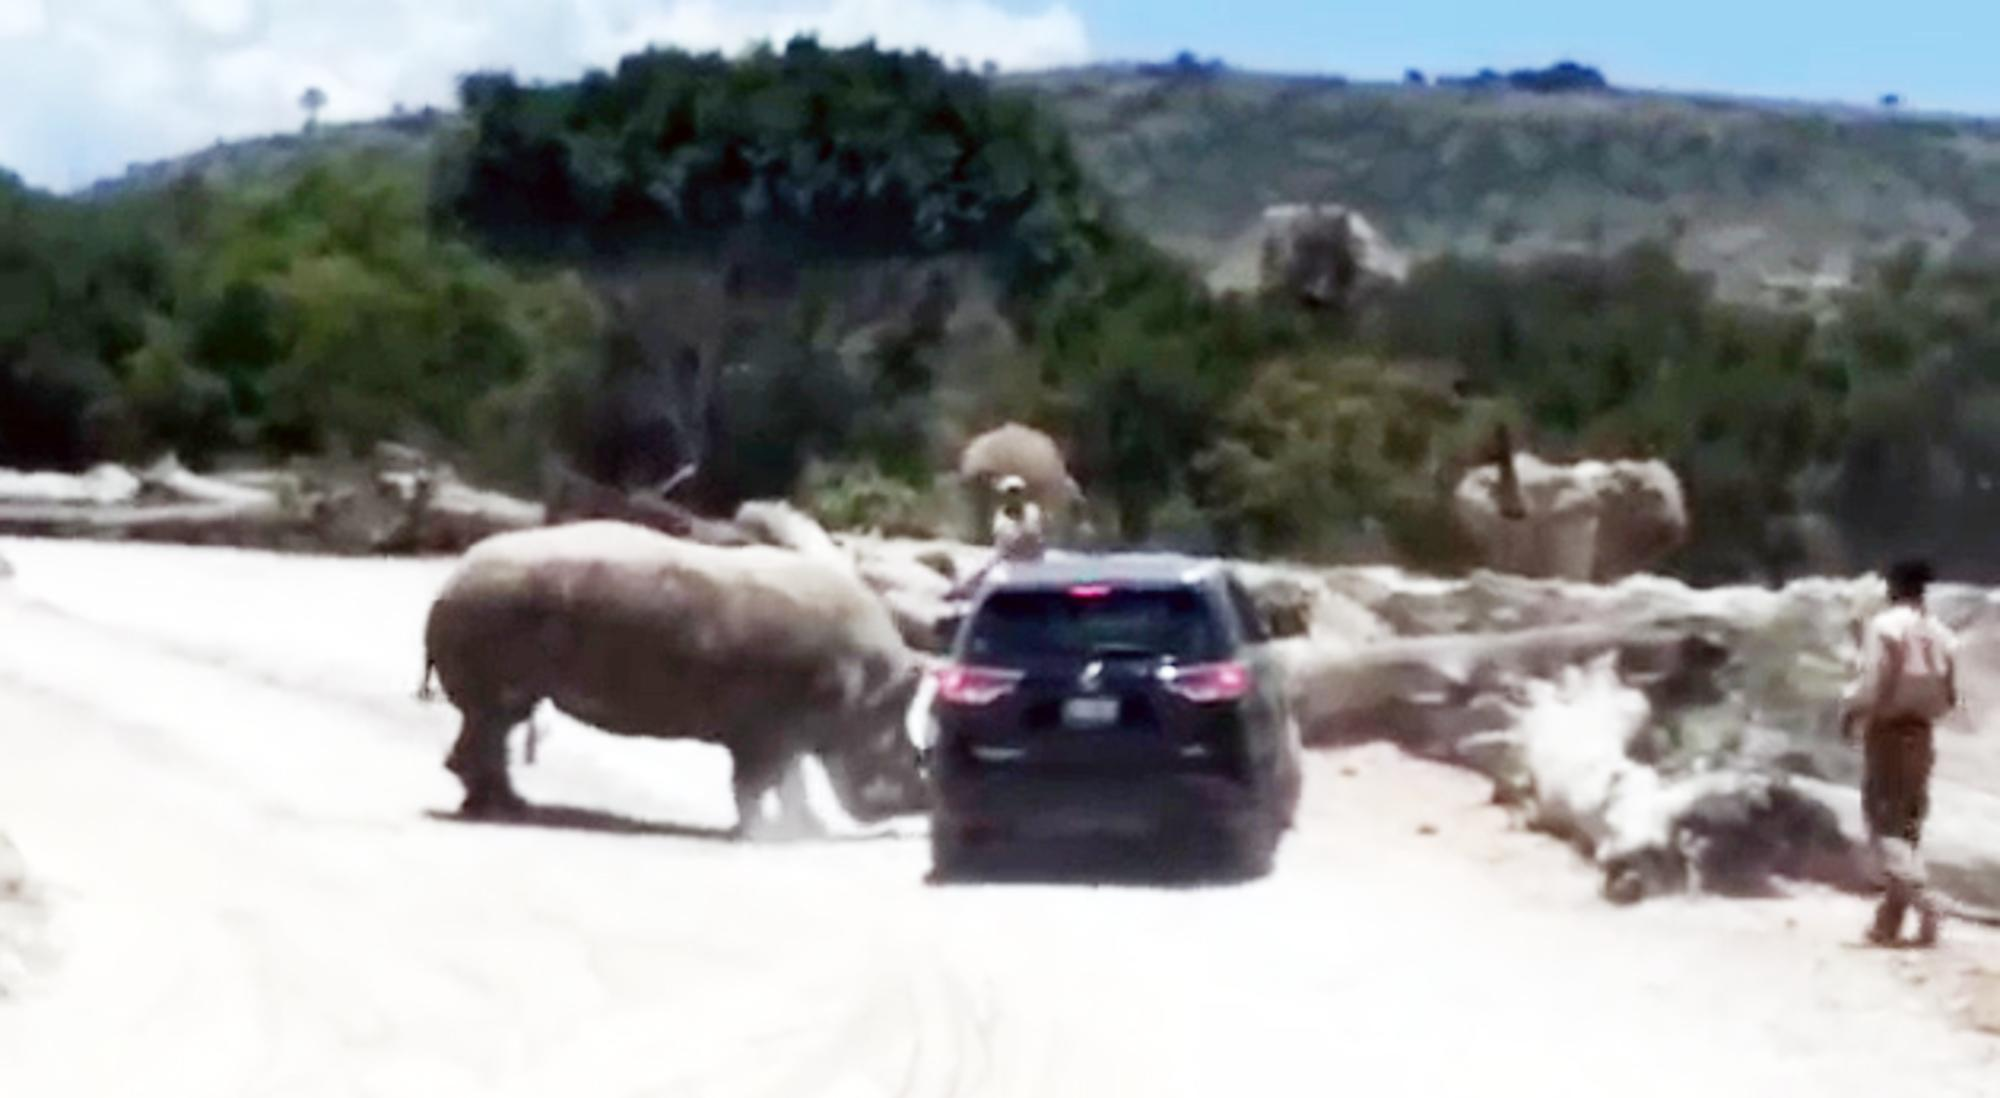 Rhino caught on camera ramming visitors' SUV at Mexican safari park